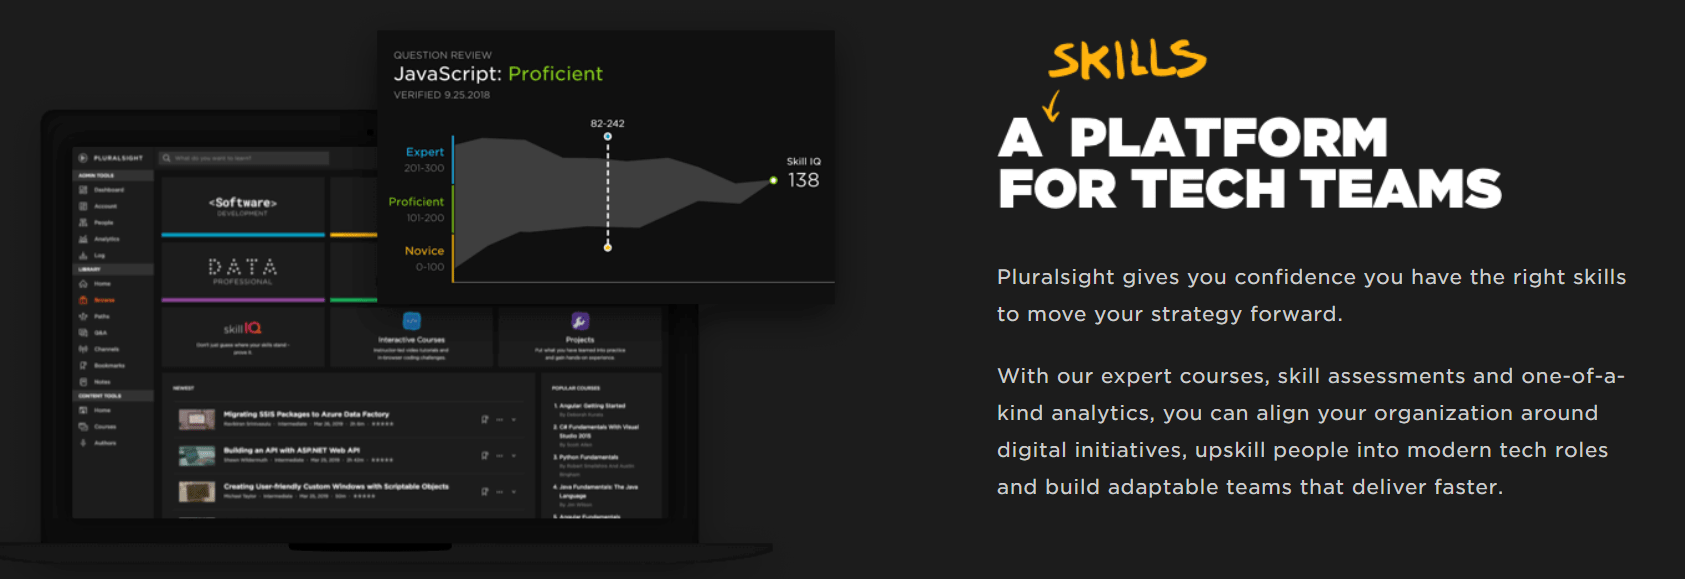 Pluralsight Review Coding-min